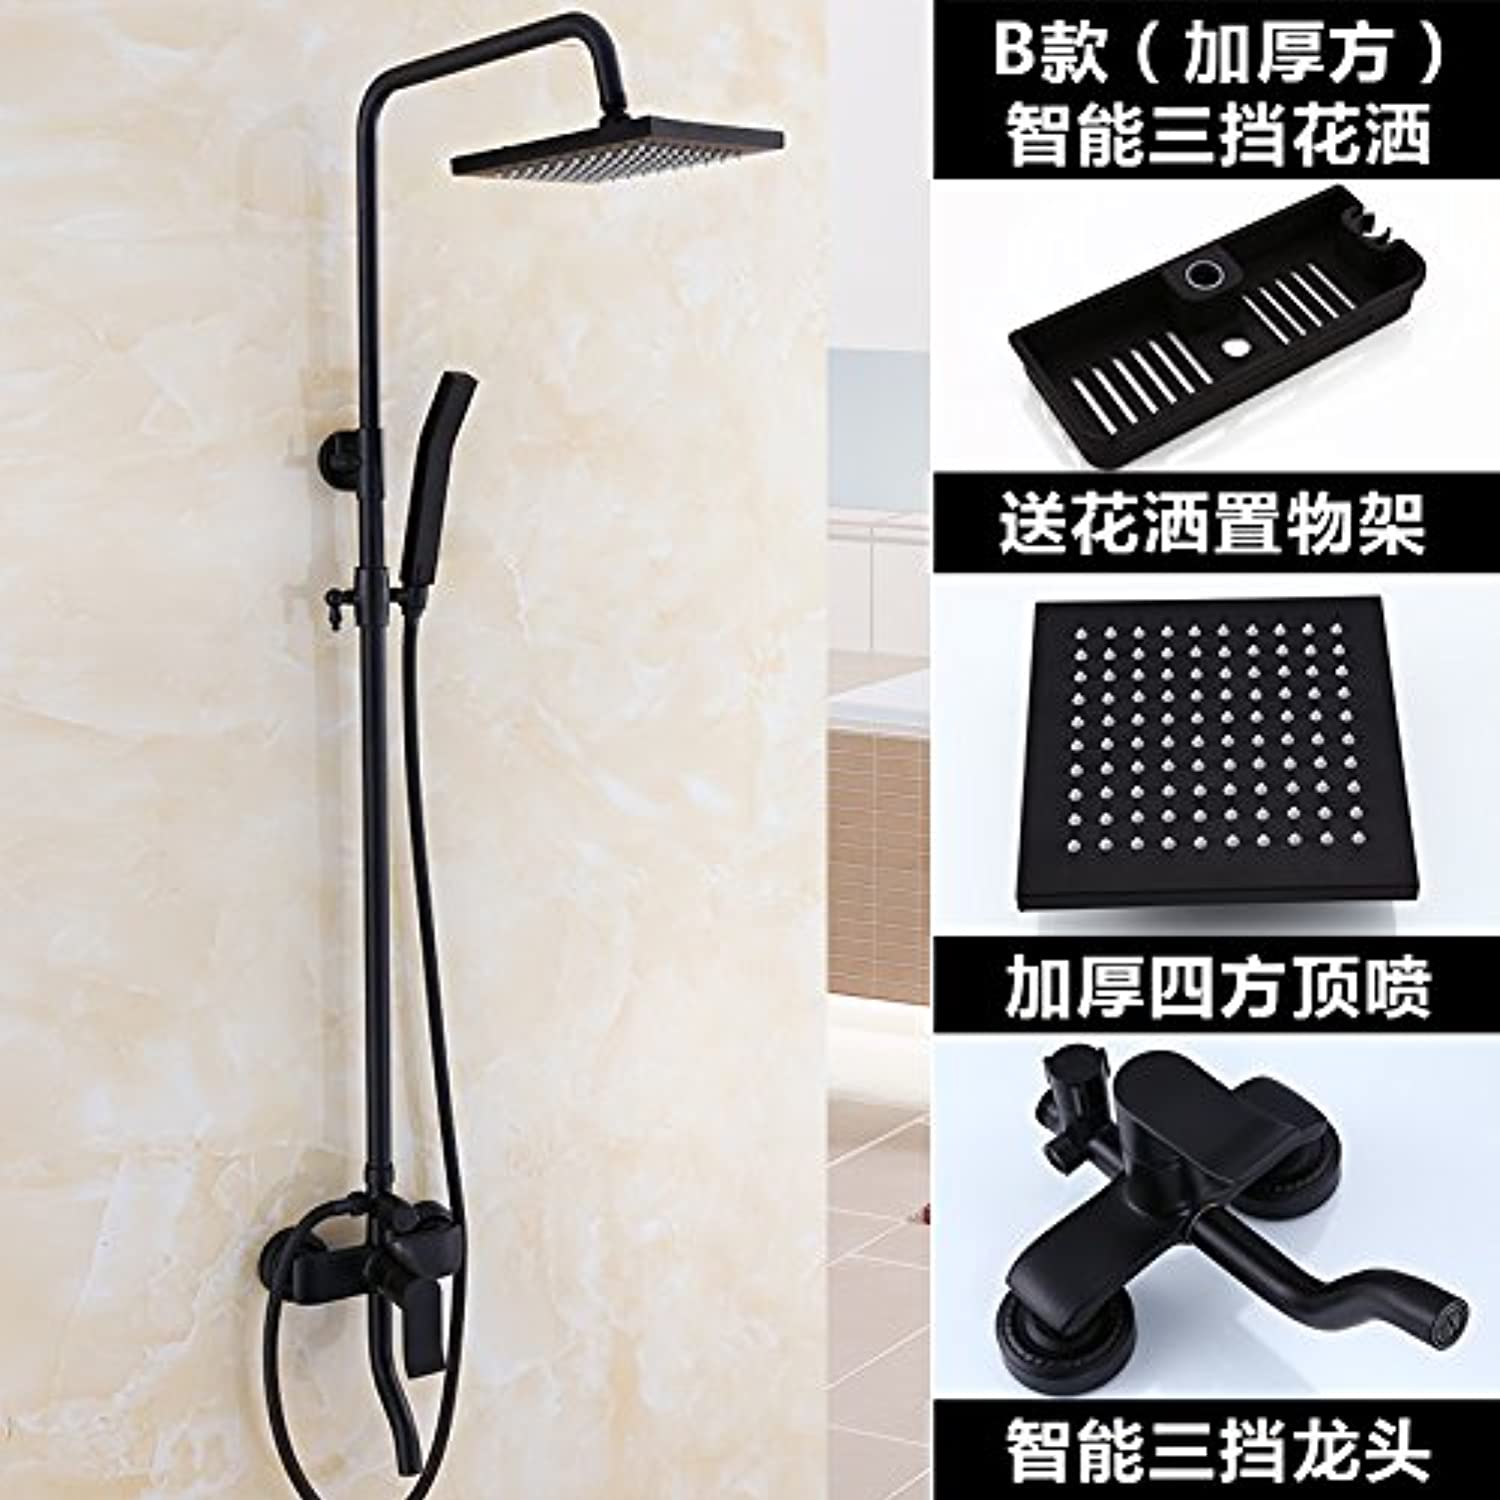 ETERNAL QUALITY Bathroom Sink Basin Tap Brass Mixer Tap Washroom Mixer Faucet Black boost shower set bathroom Dumb black shower antique-brass faucets to lift B Thick part